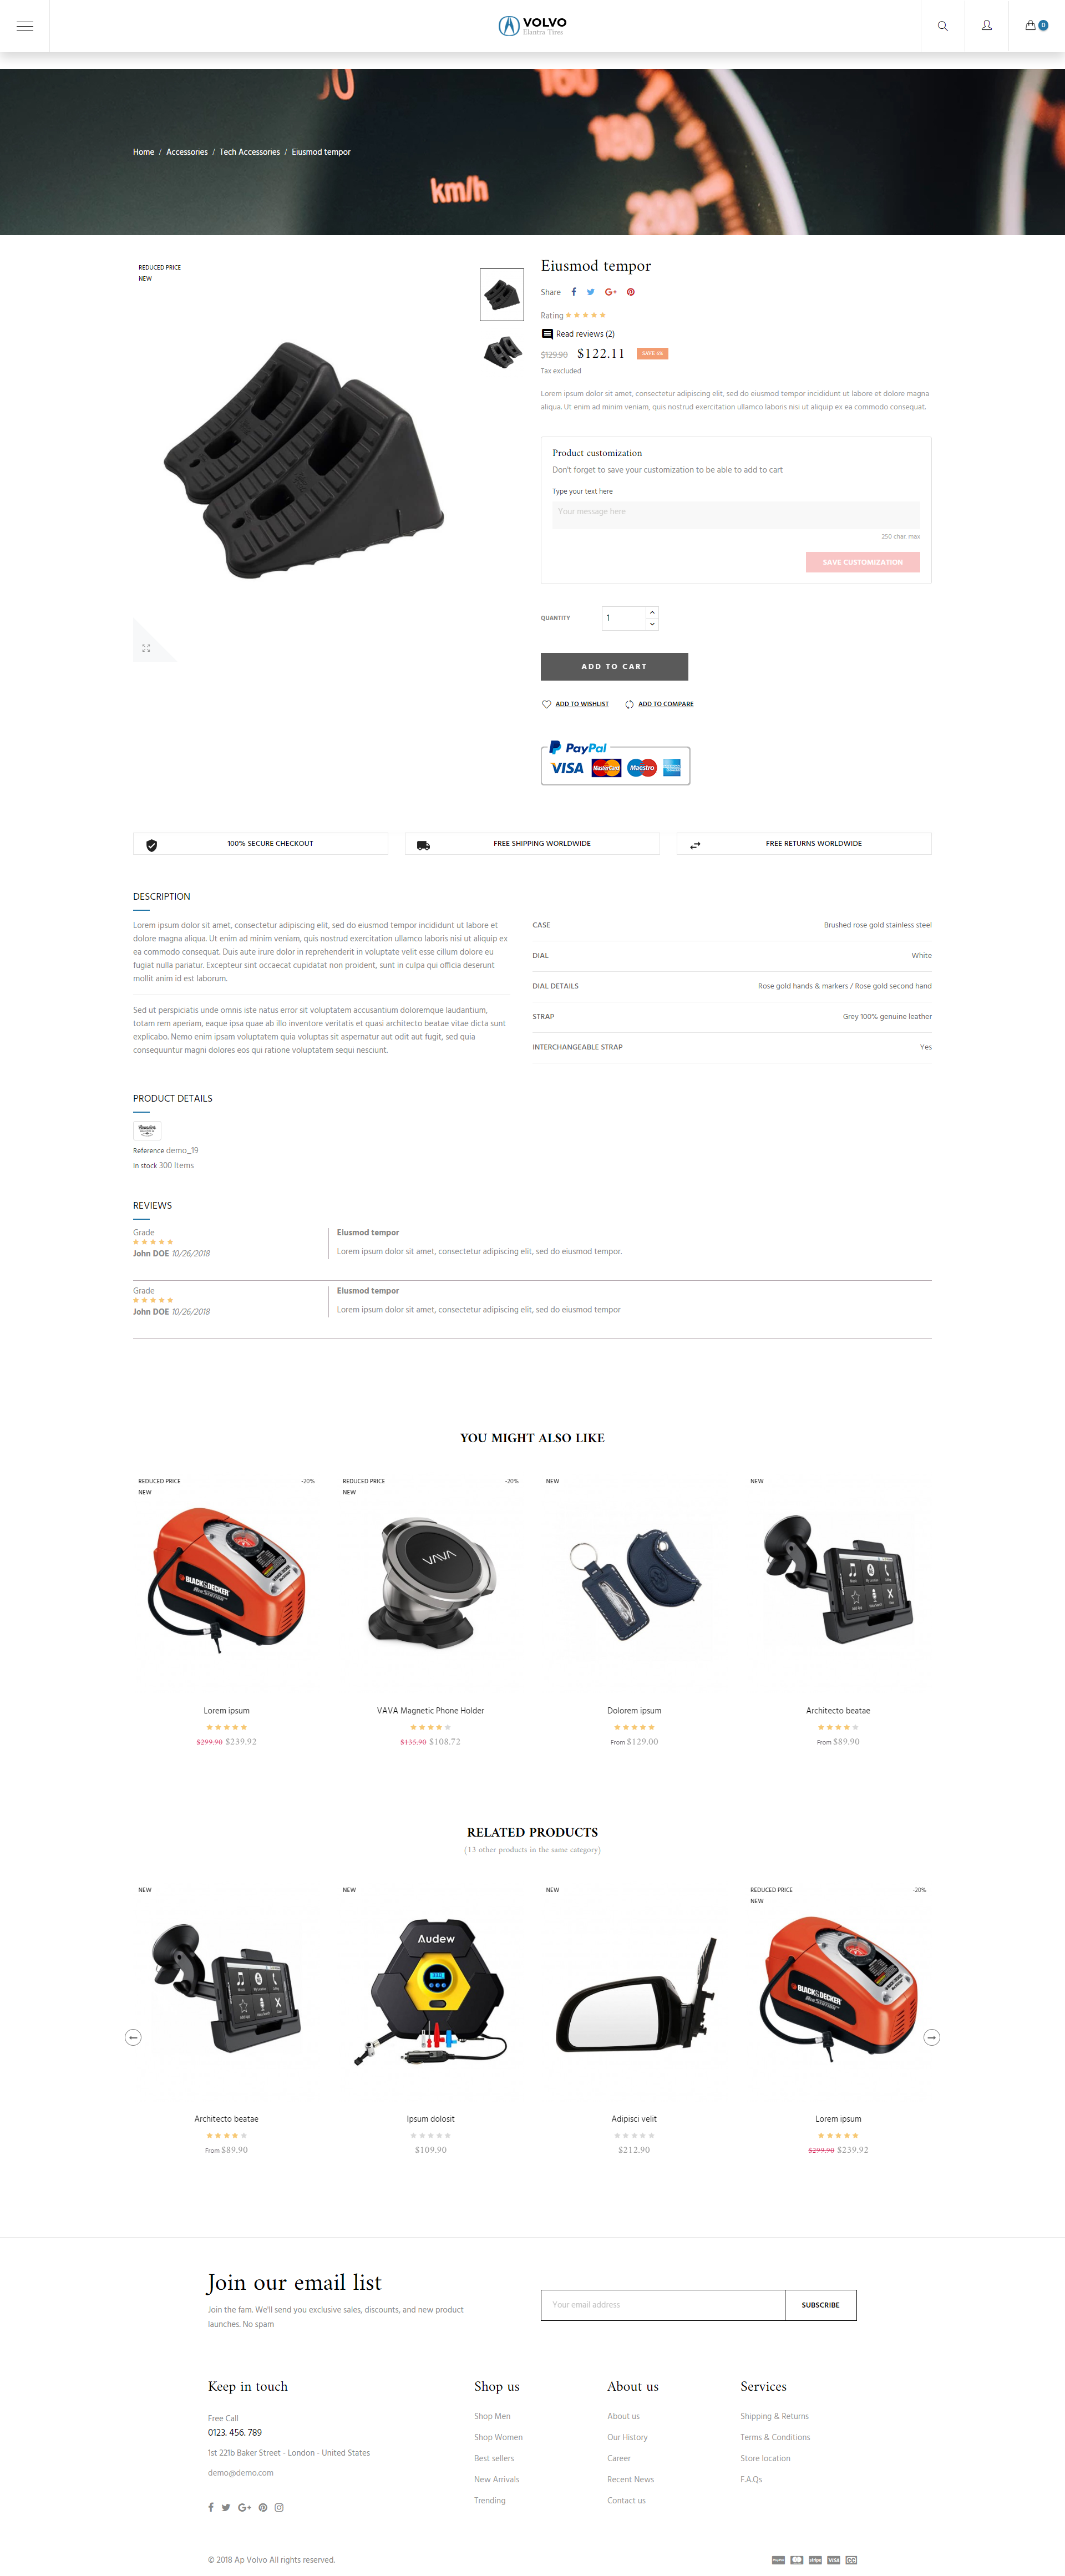 Product image thumbs right